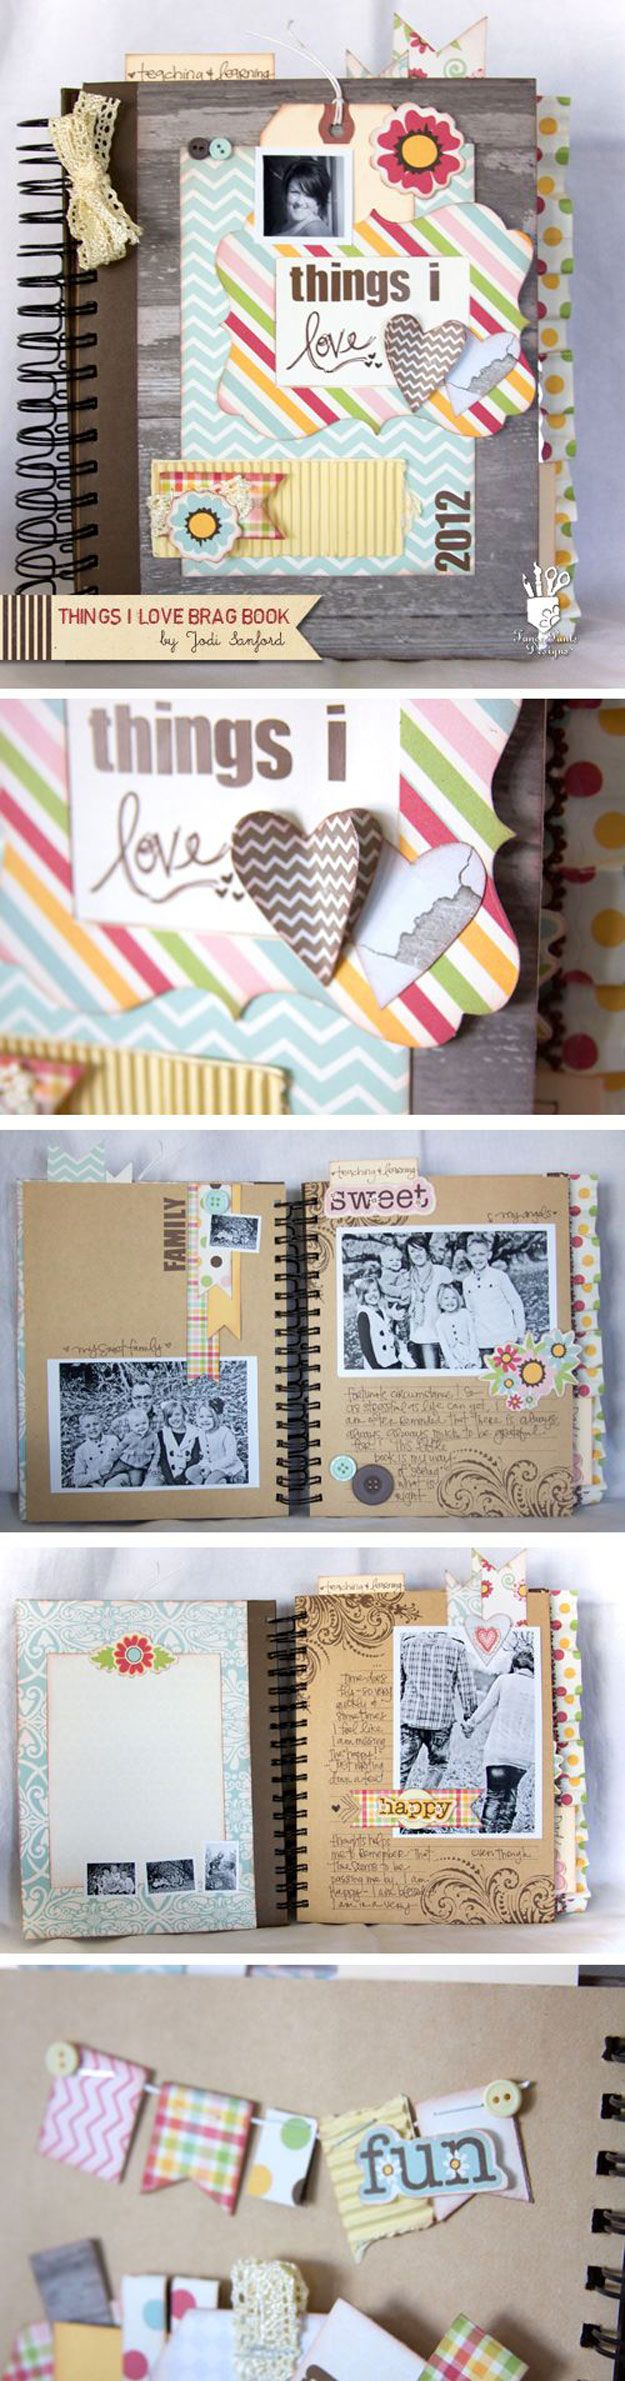 Scrapbook Ideen Fotobuch Scrapbook Ideas Every Crafter Should Know Scrapbooks Scrapbook